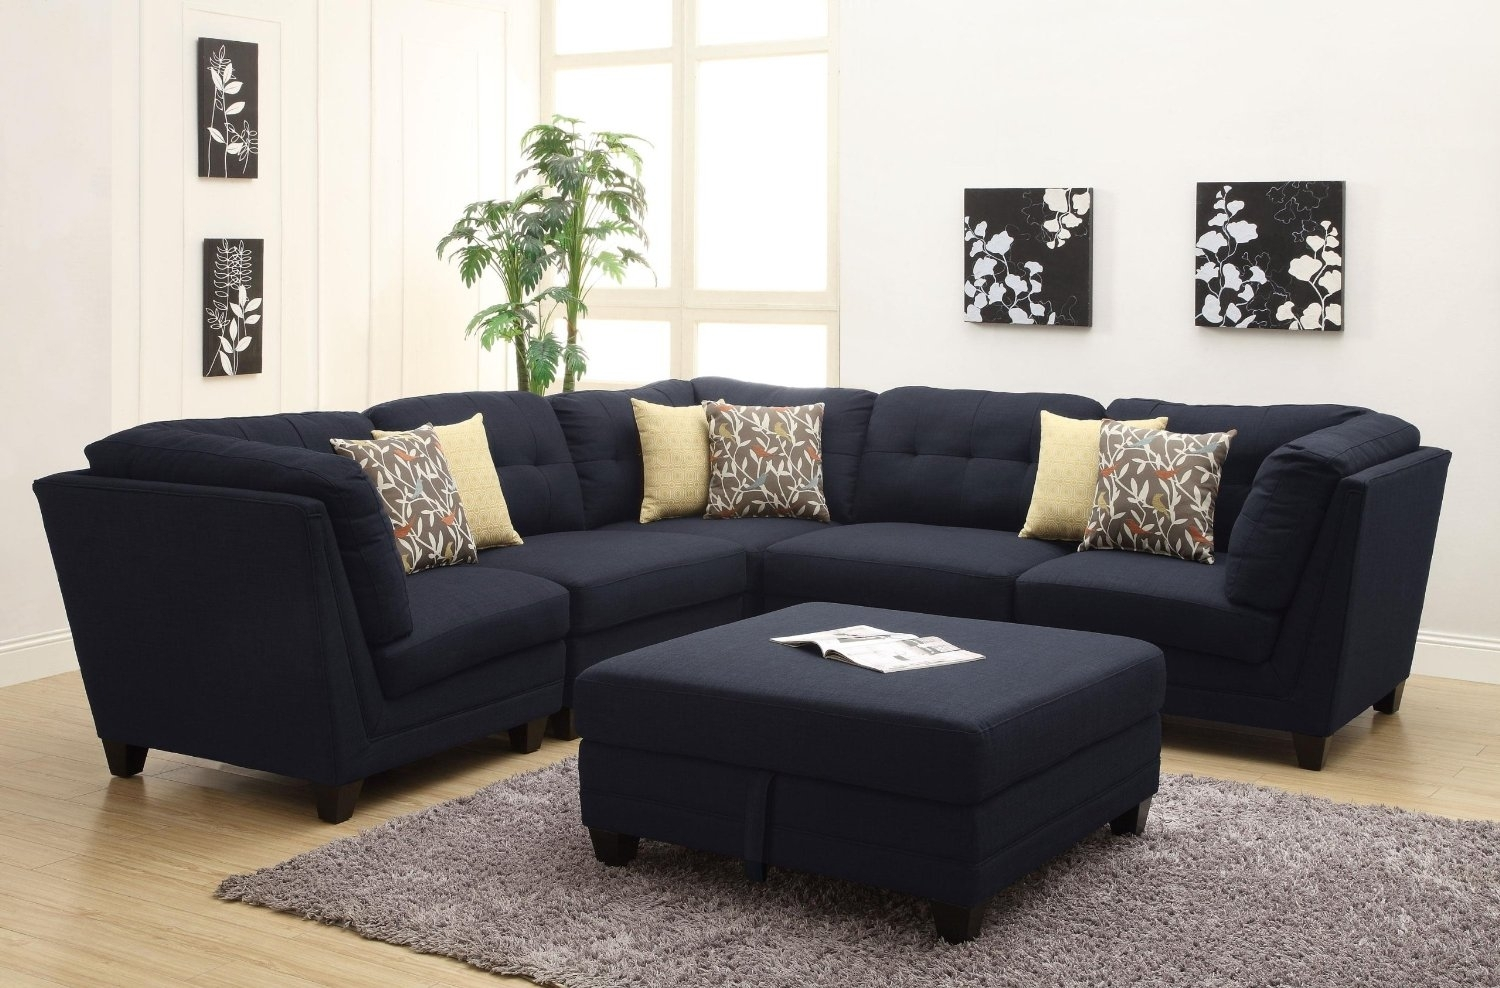 Most Comfortable Sectional Sofa For Fulfilling A Pleasant Atmosphere With Comfy Sectional Sofas (View 6 of 10)